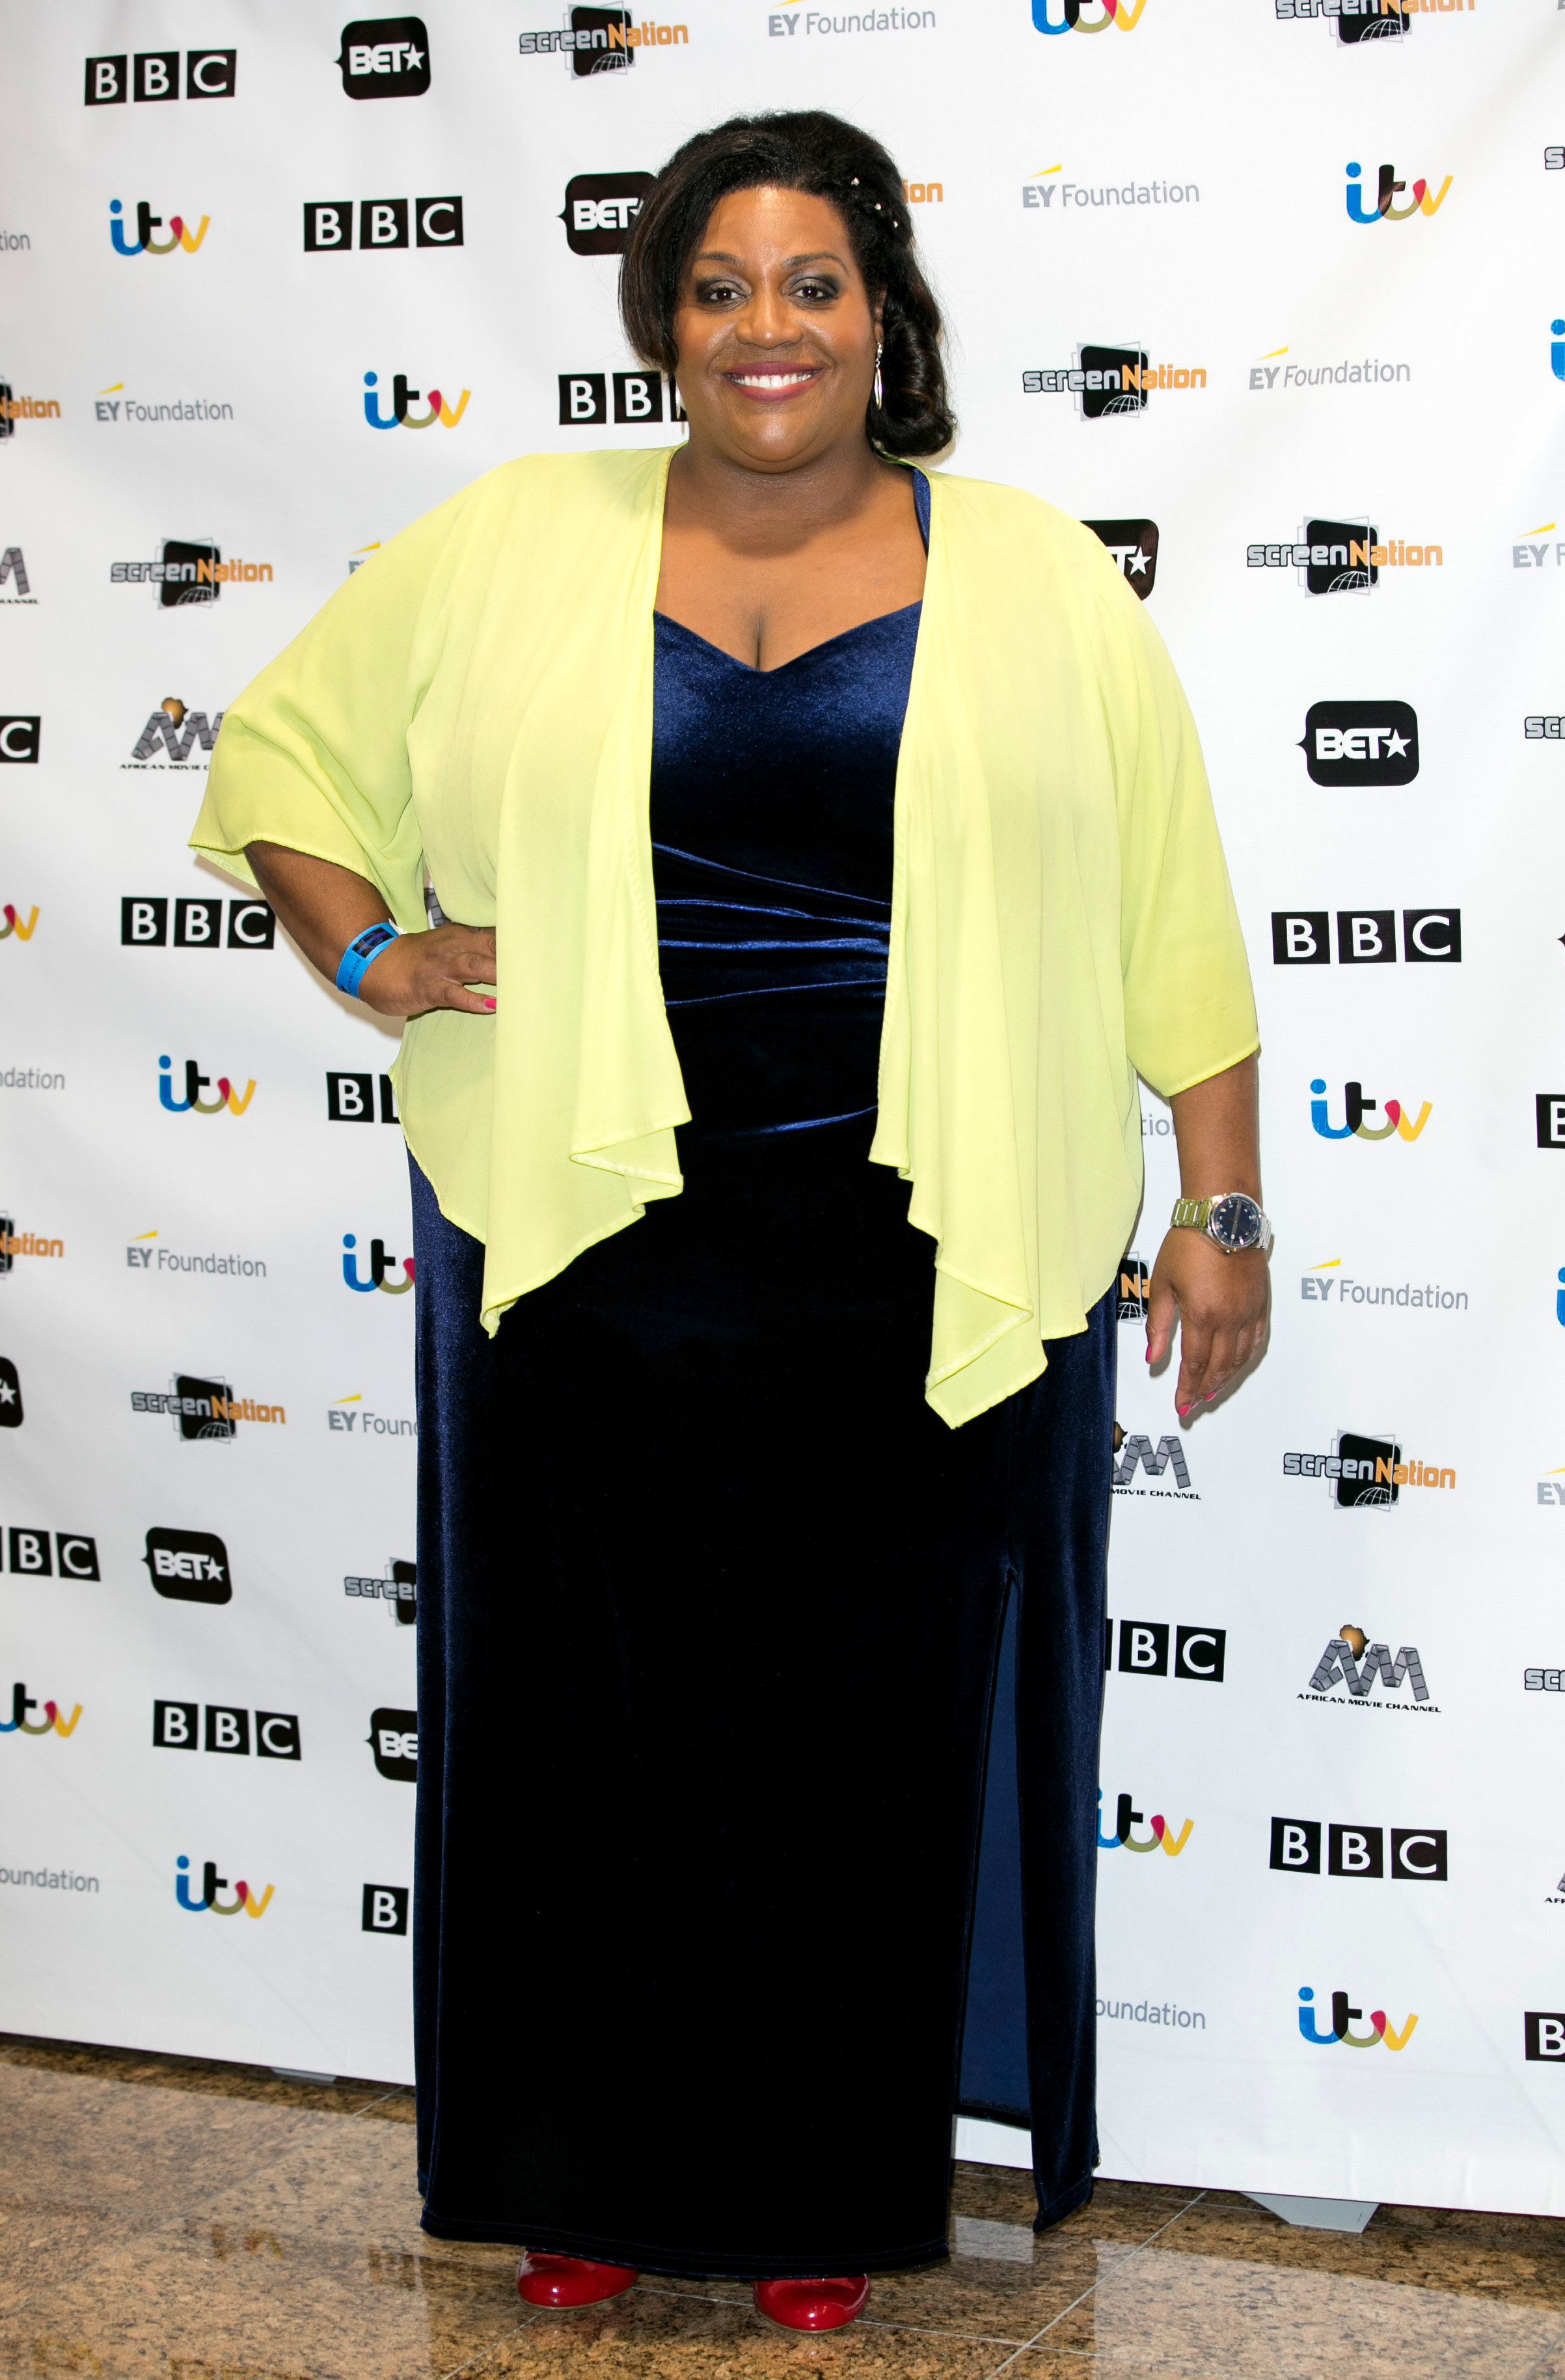 Alison Hammond Reveals Health Fears Over Weight